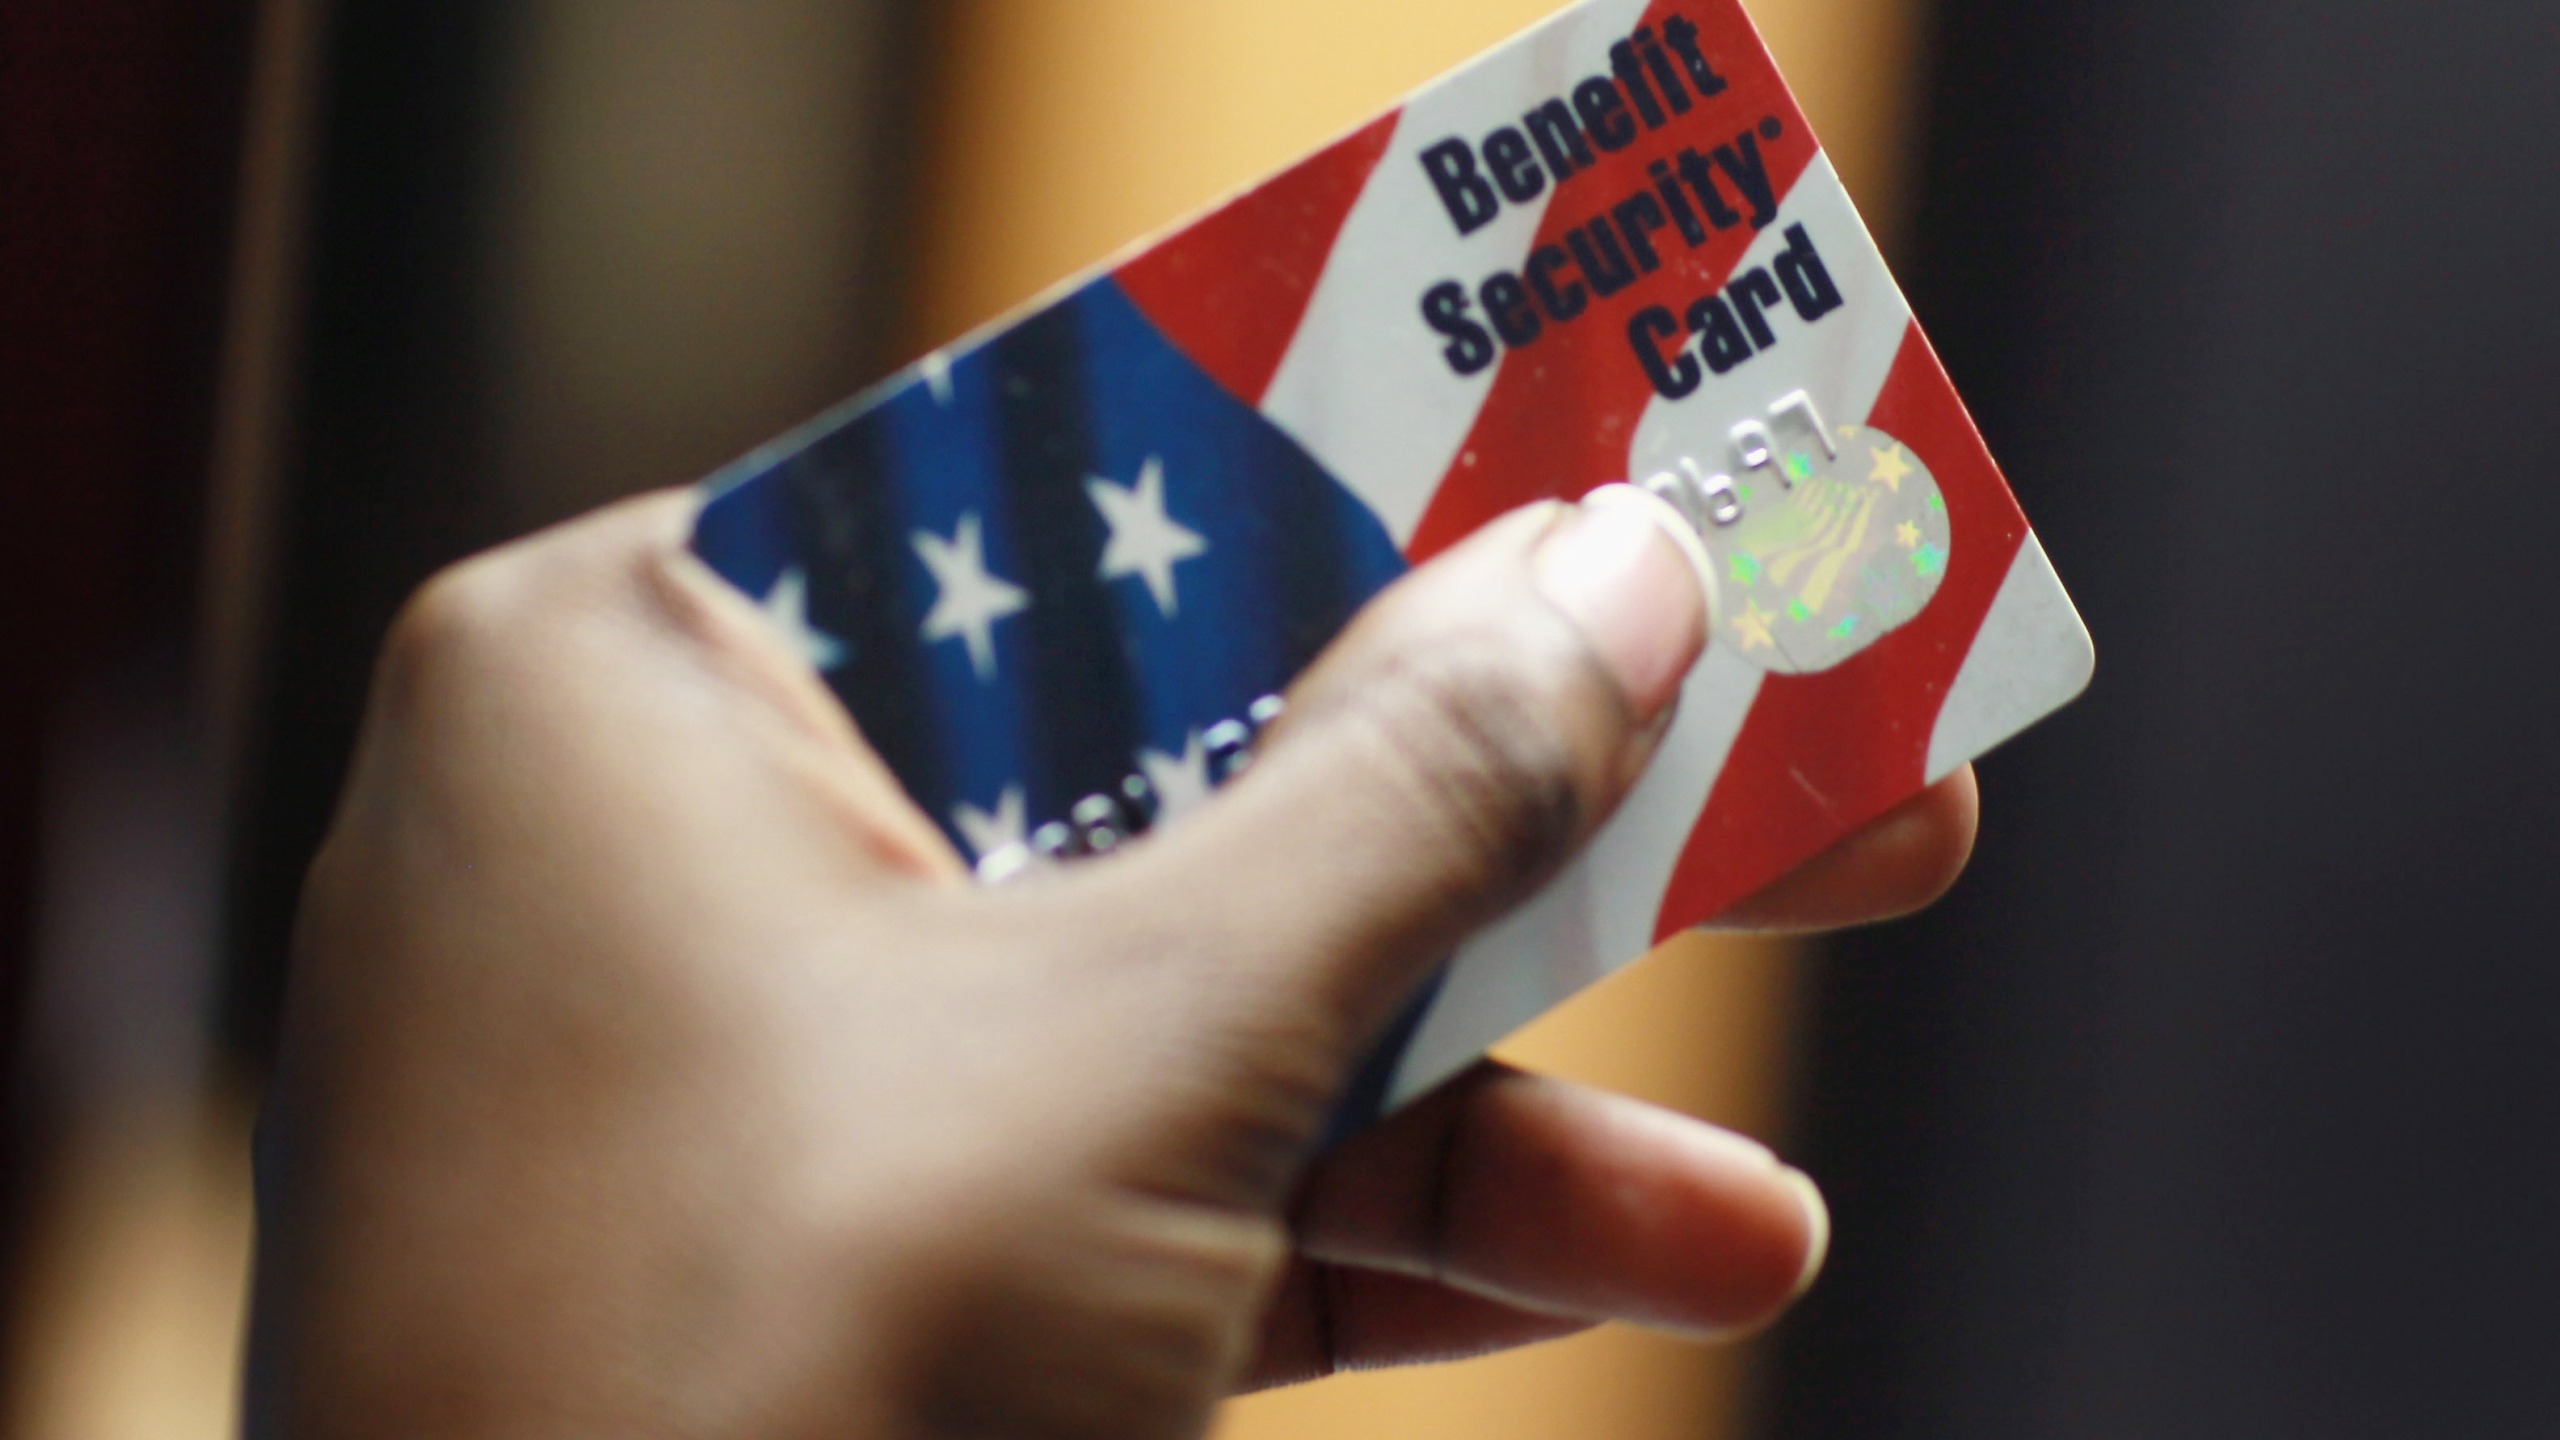 Food stamps_1546875330198